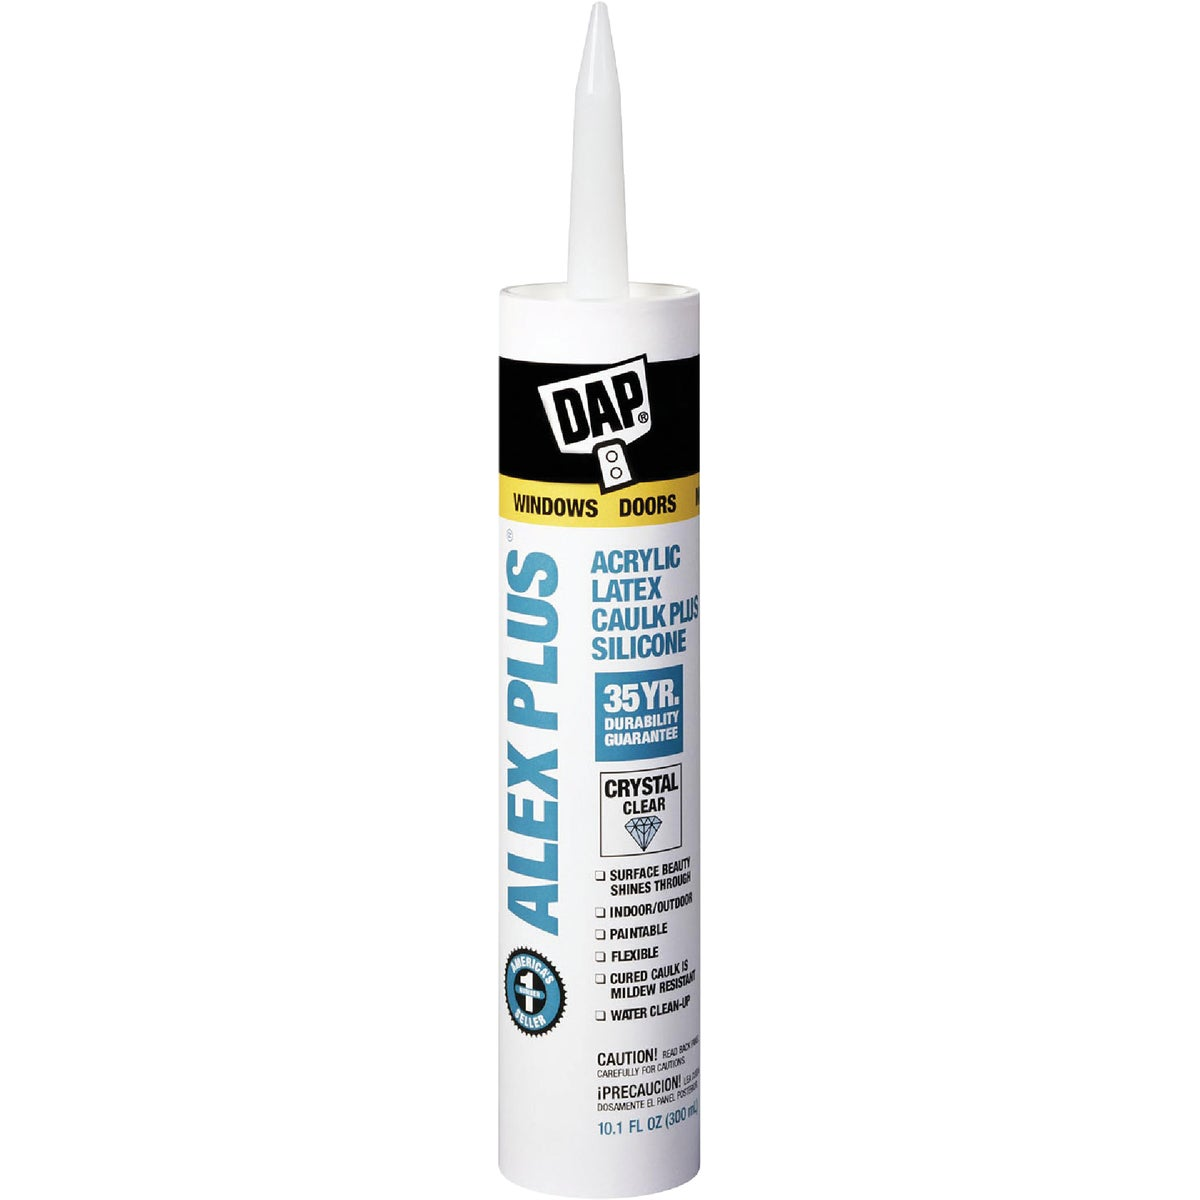 CRYS CLR ALEX PLUS CAULK - 18401 by Dap Inc